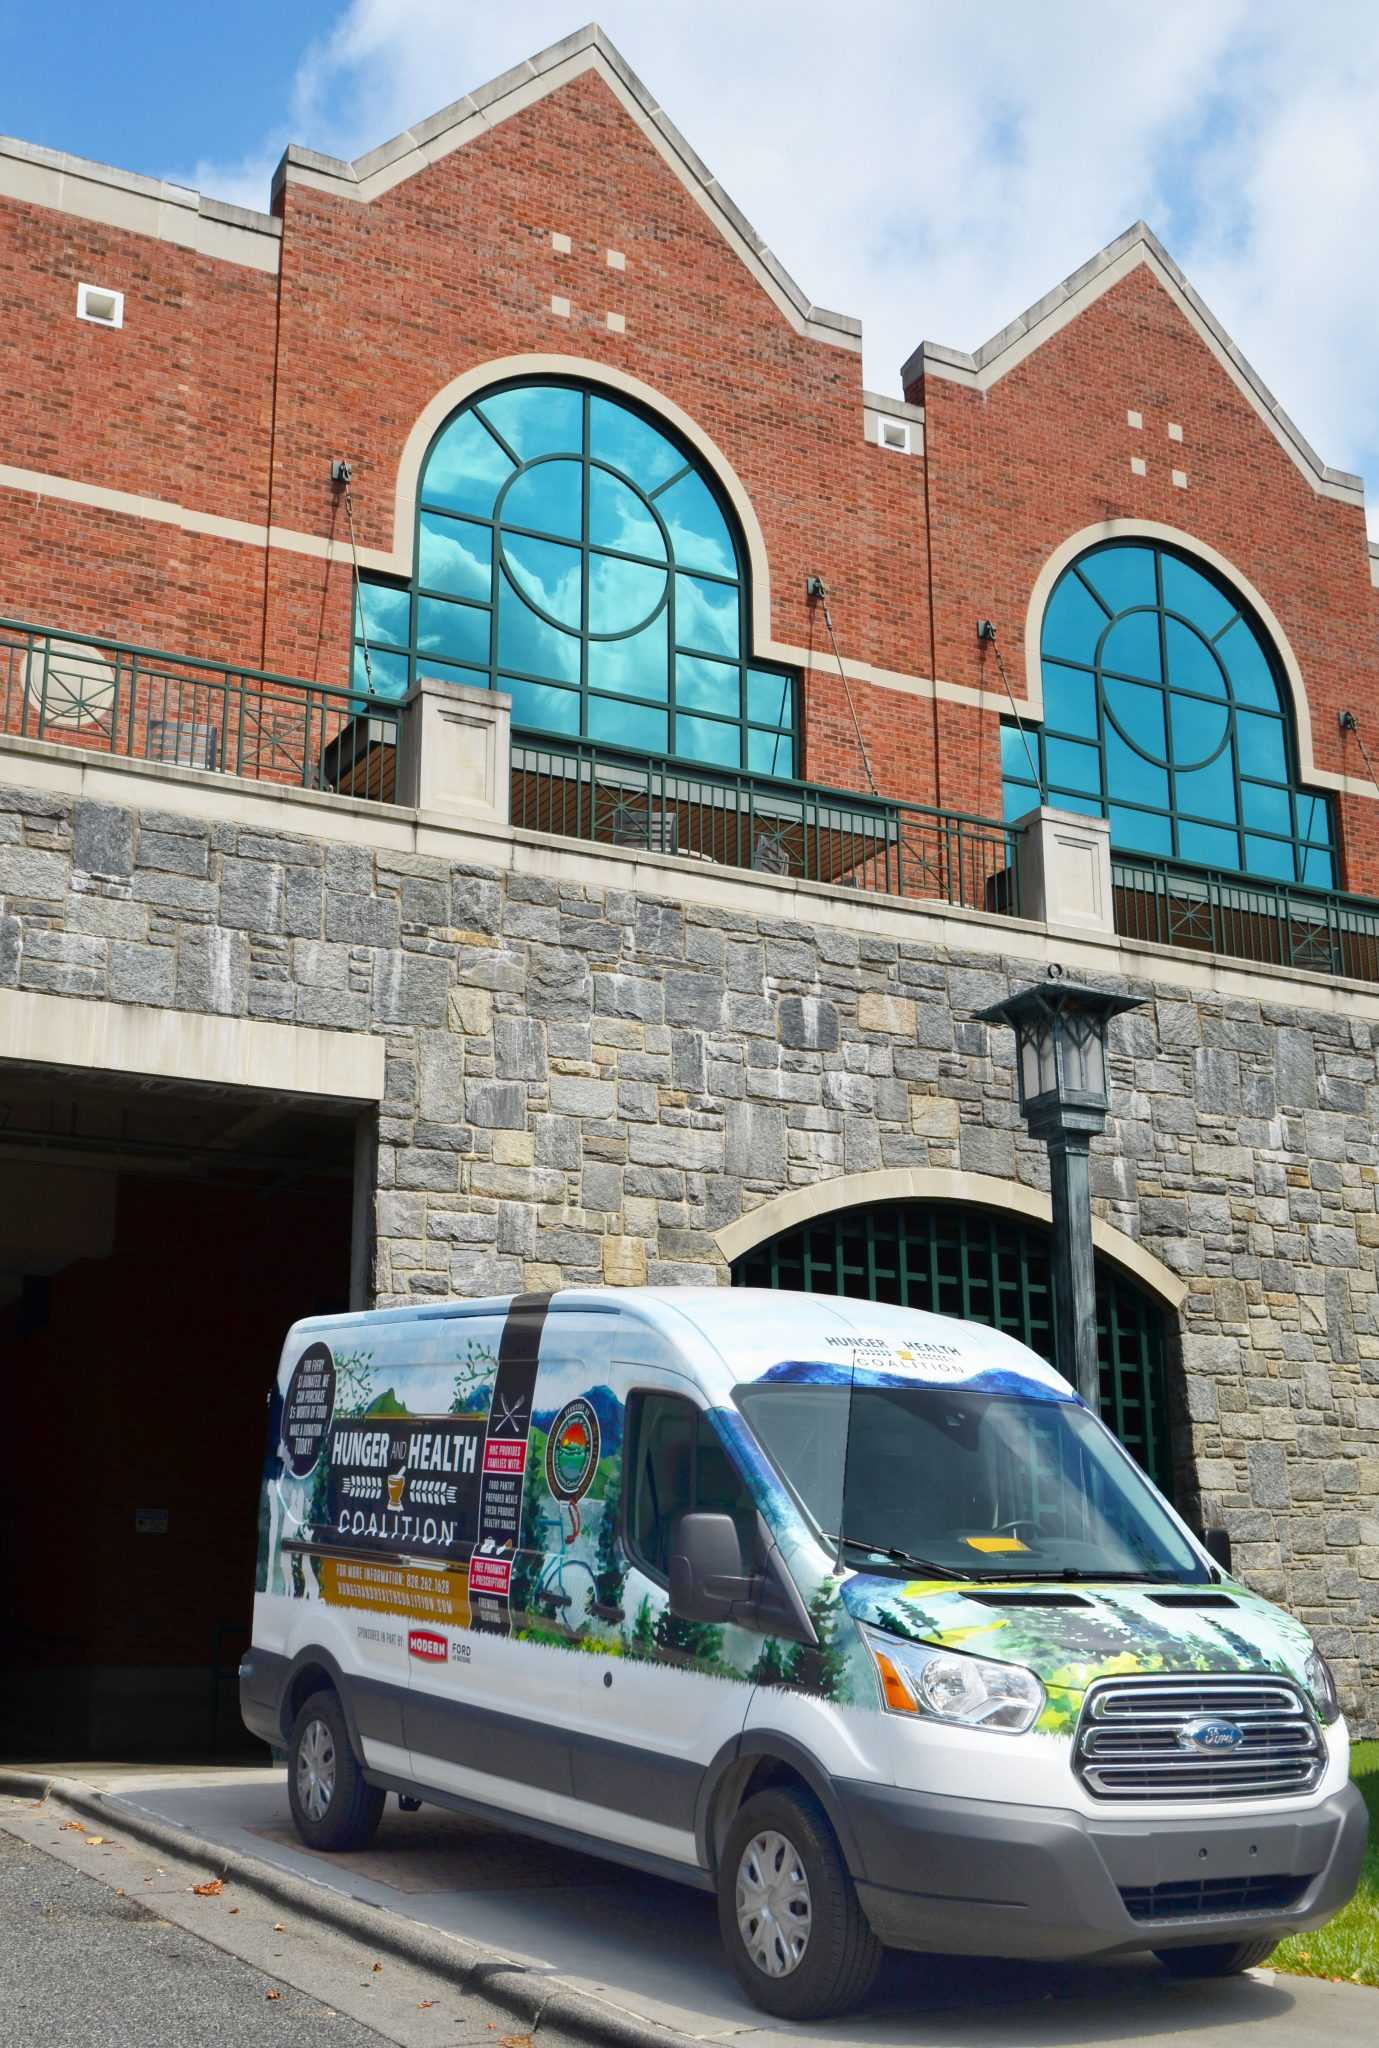 The Hunger and Health Coalition's bus parked outside of Roess Dining Hall.